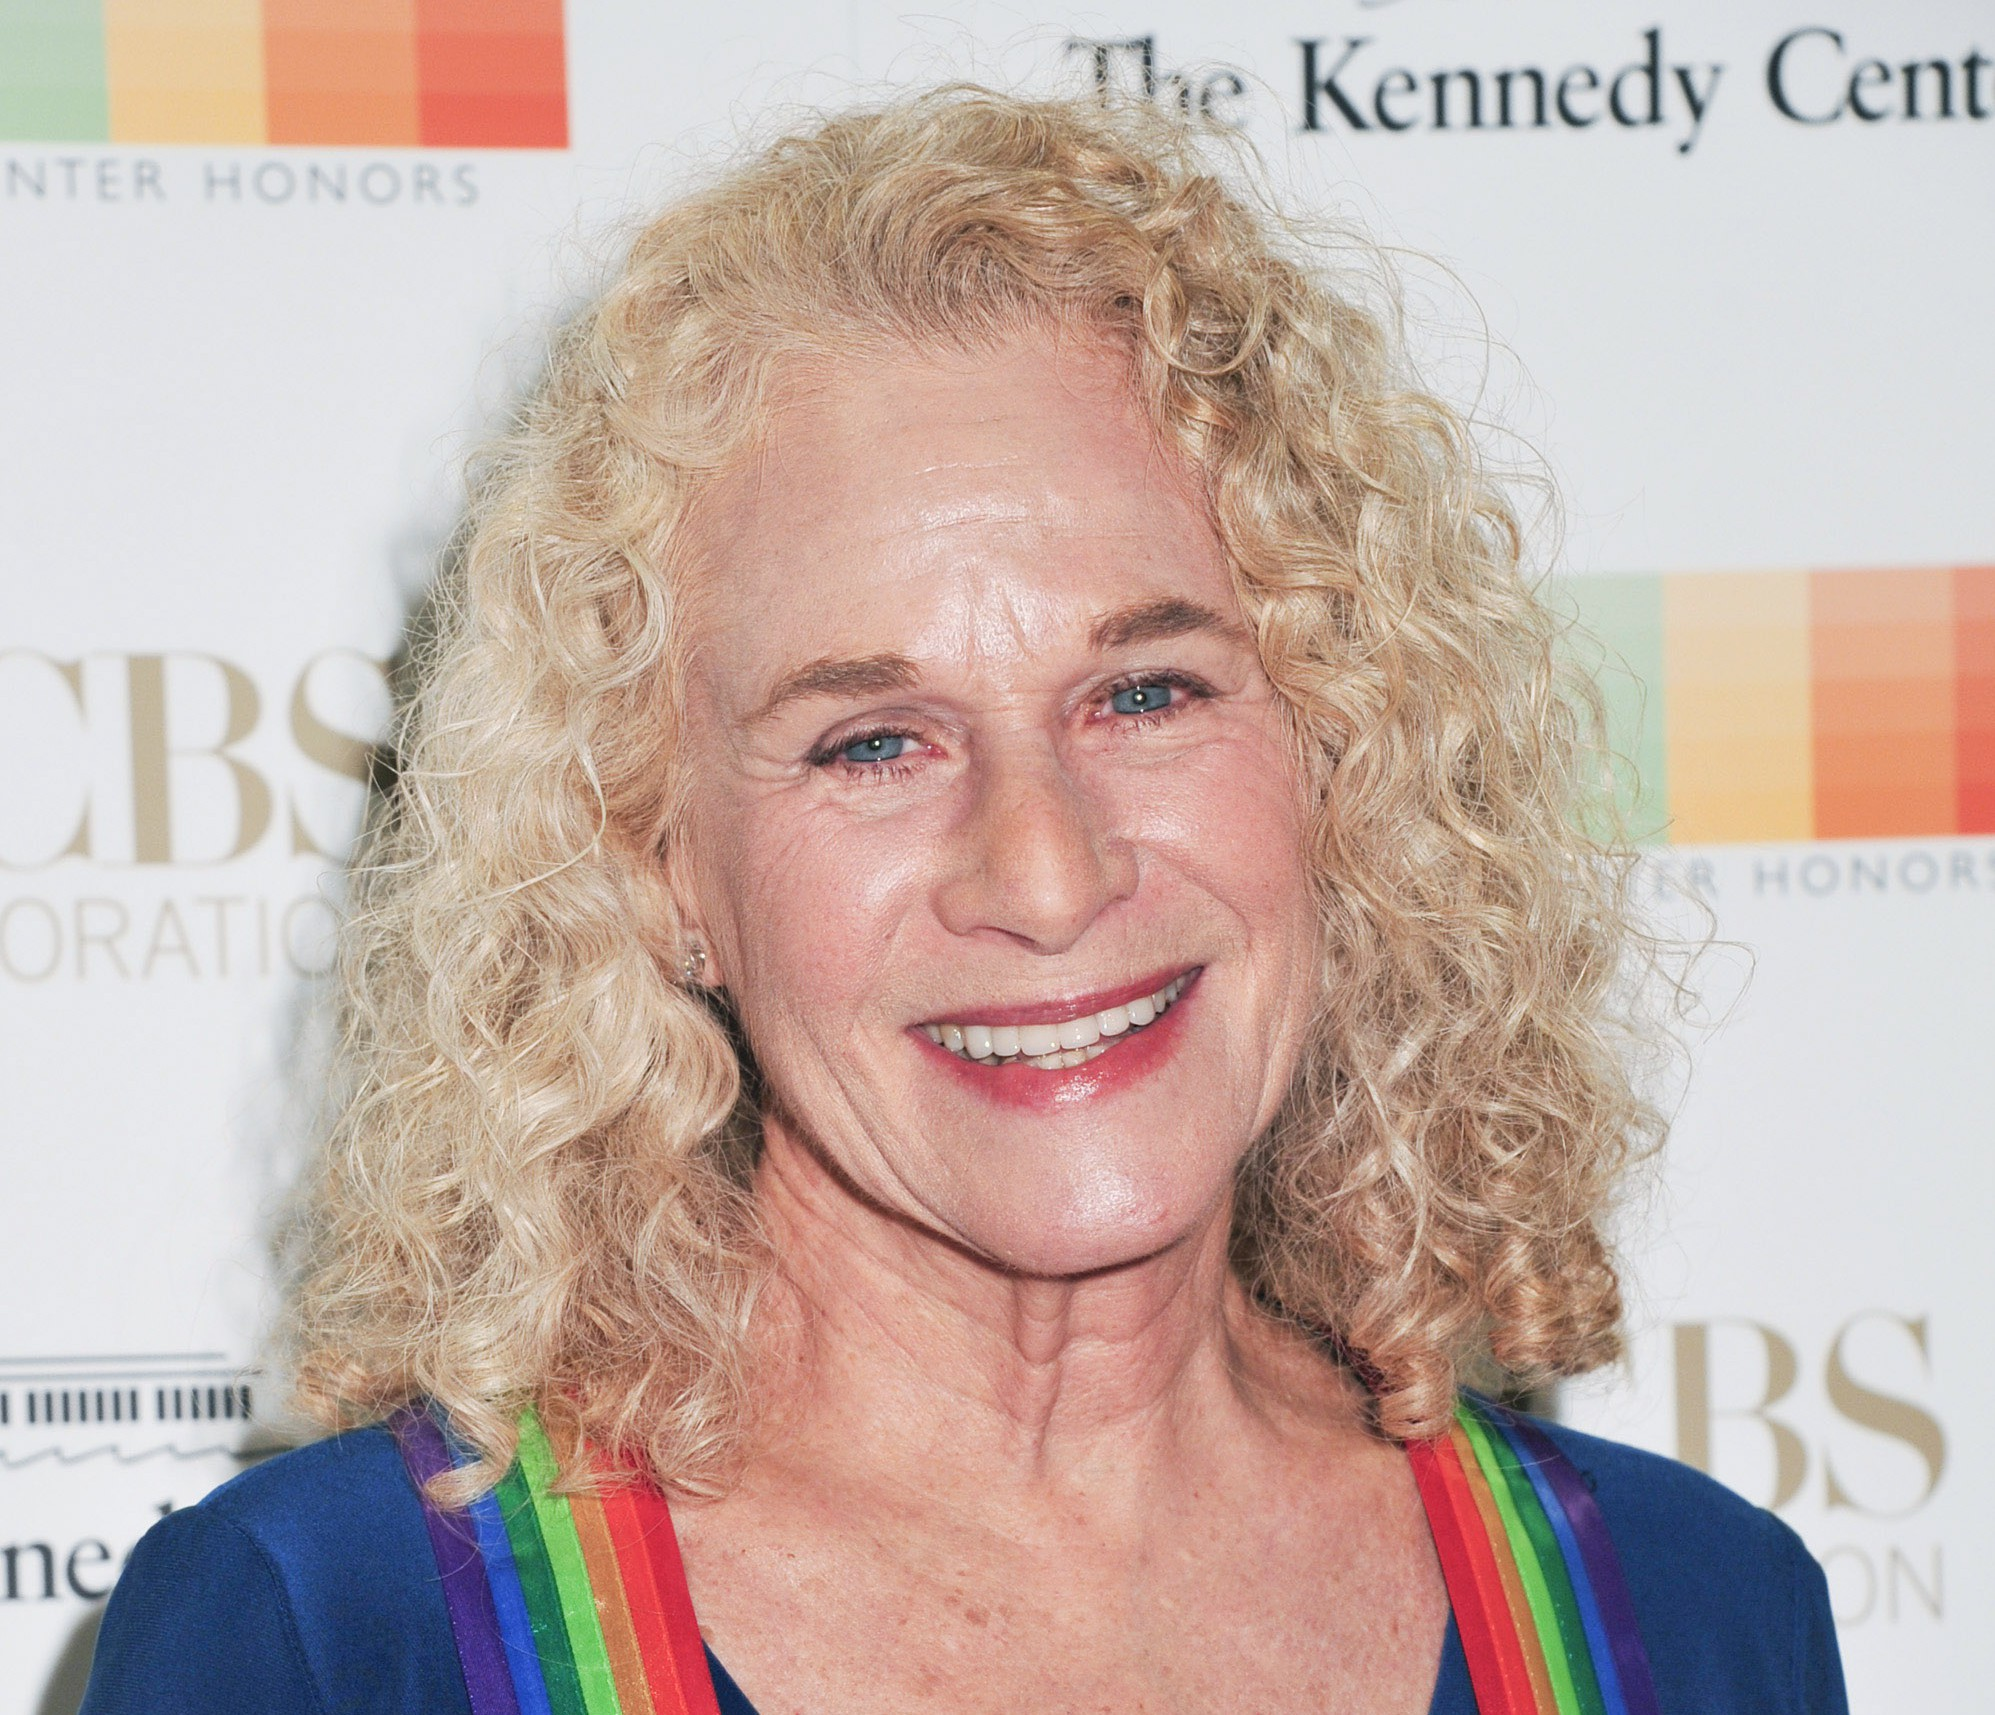 Music legend Carole King to perform first UK concert since 1989